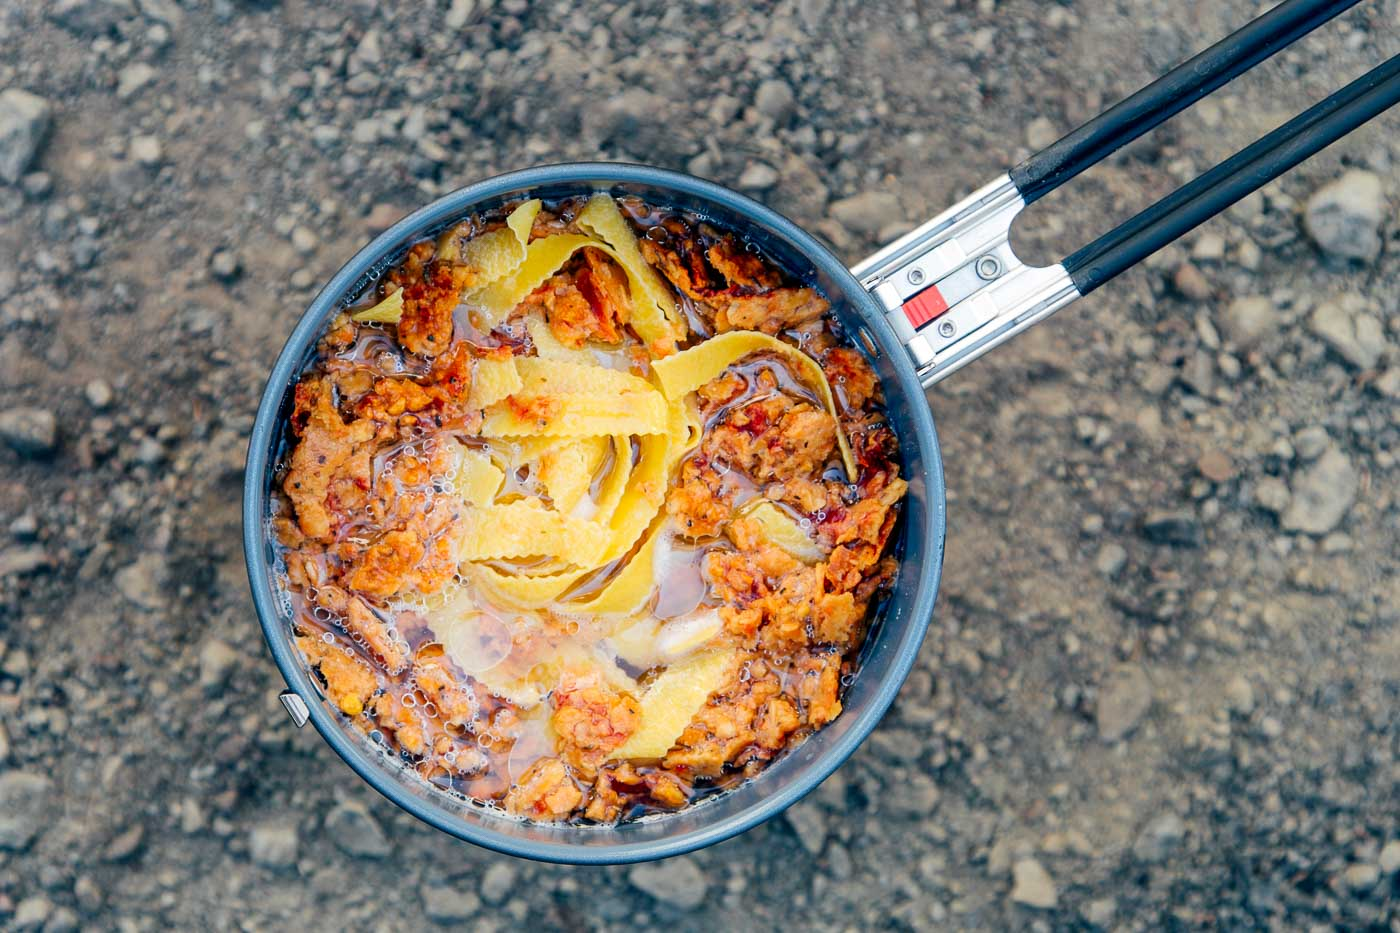 Red lentil marinara and pasta in a backpacking pot